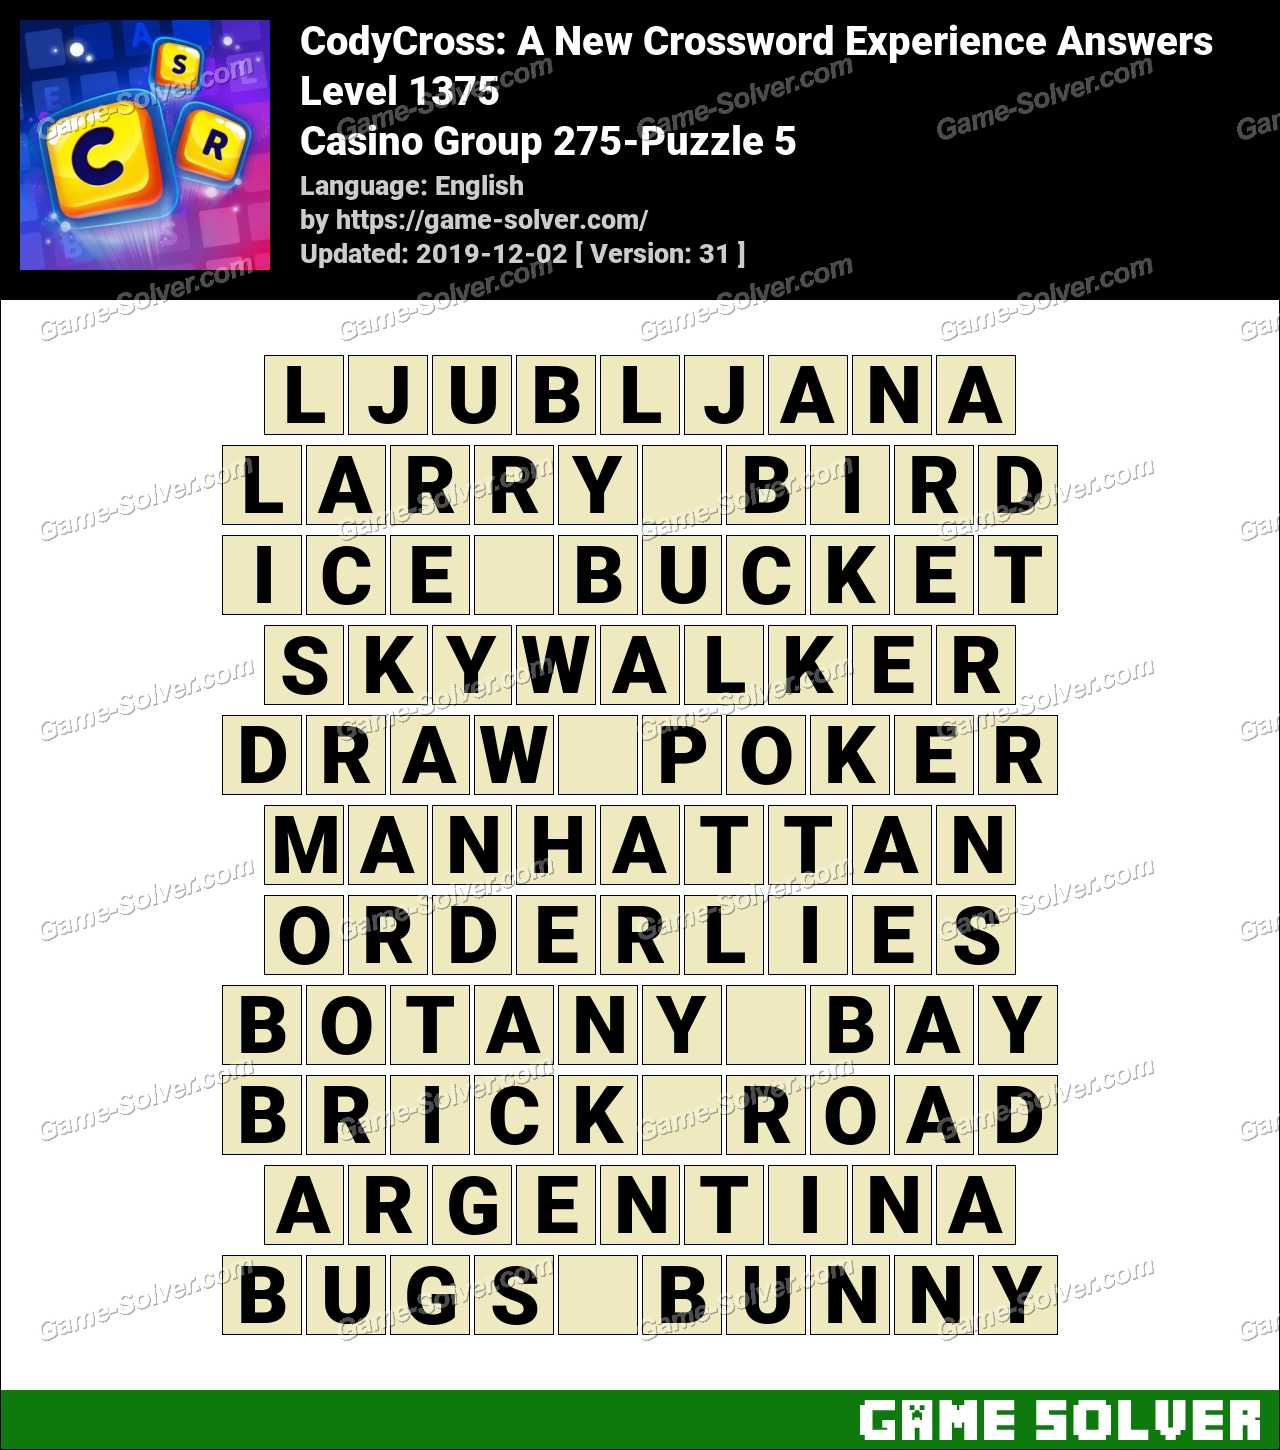 CodyCross Casino Group 275-Puzzle 5 Answers